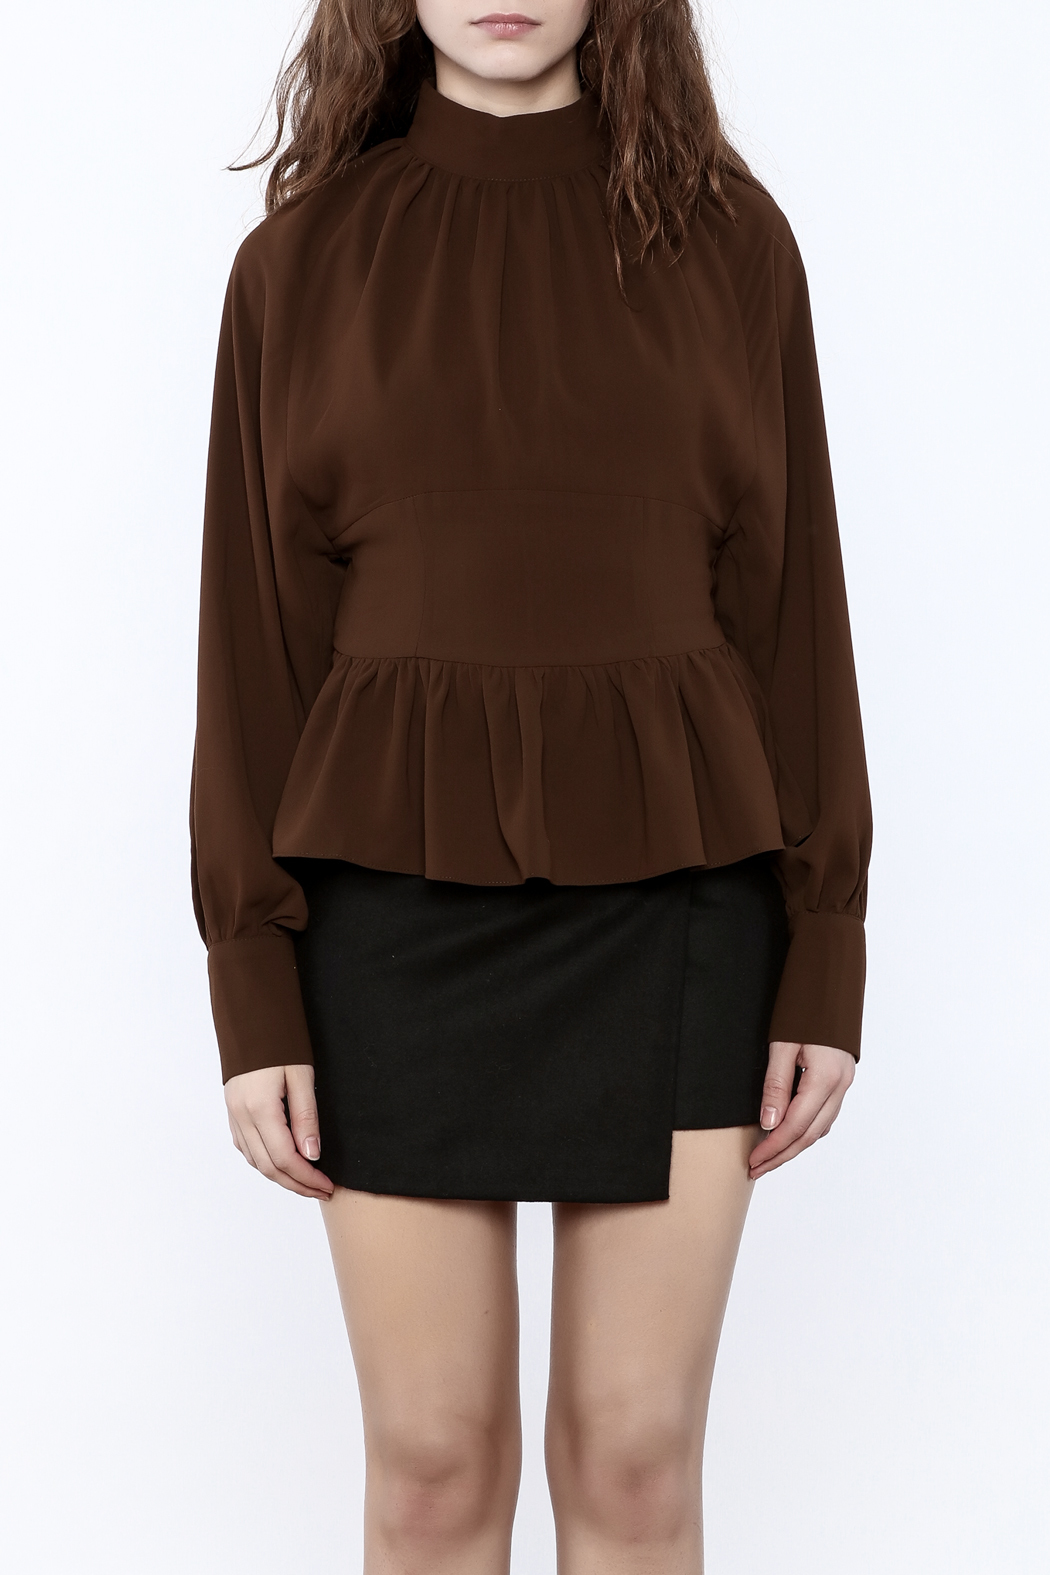 Pinkyotto High Collar Peplum Blouse - Side Cropped Image